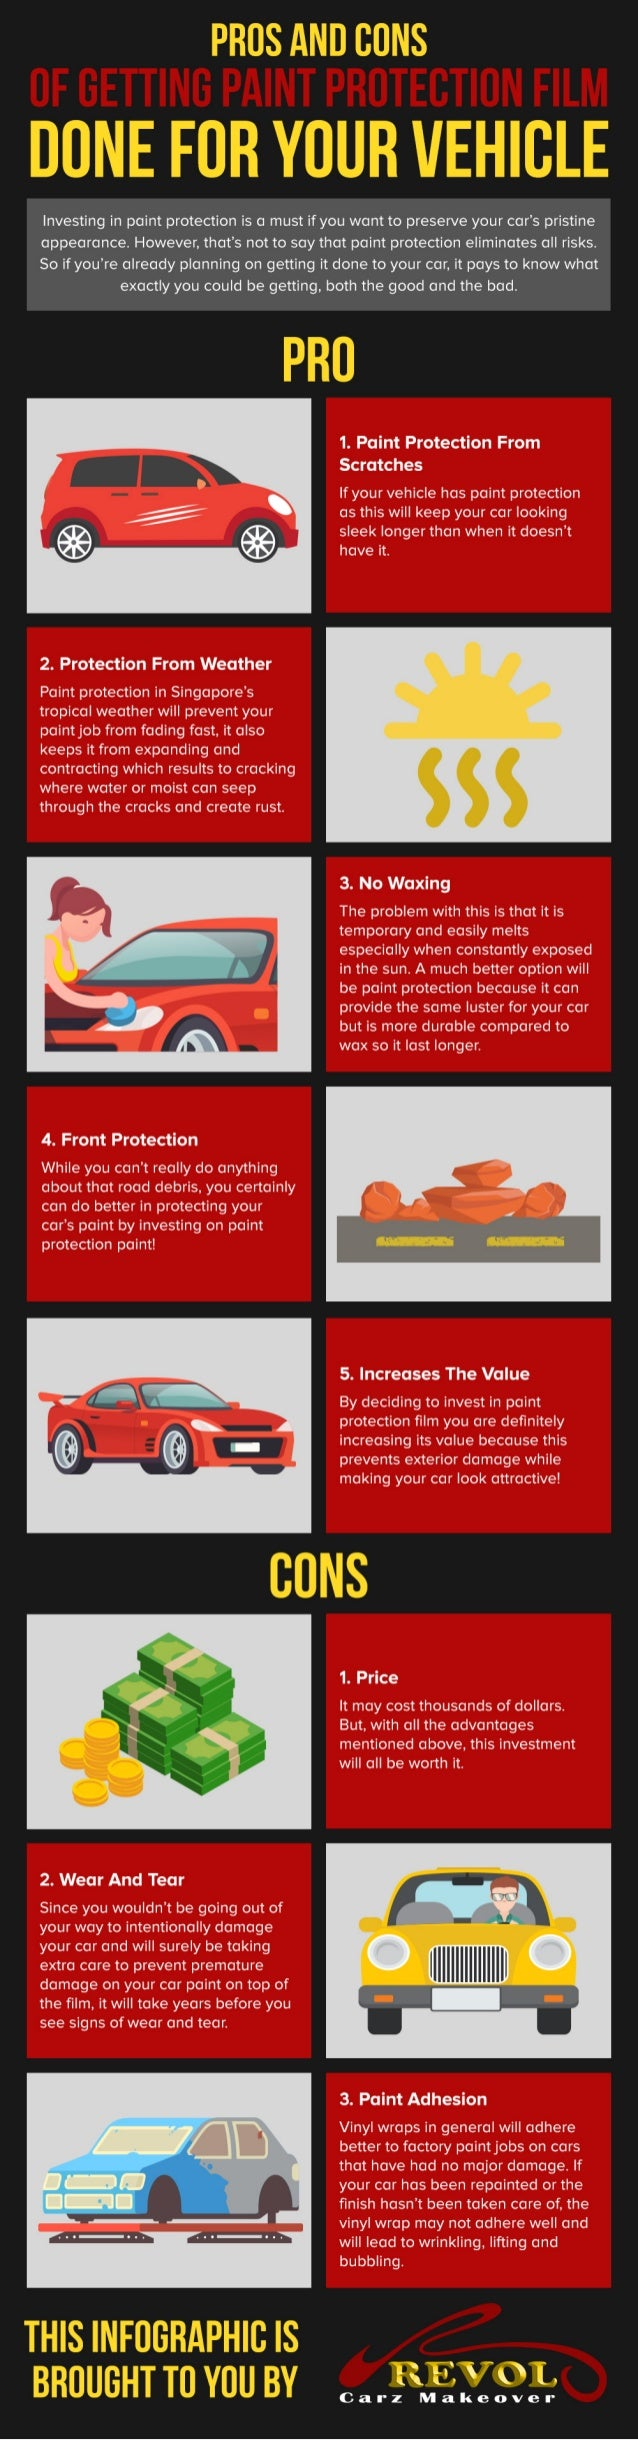 Pros And Cons Of Getting Paint Protection Film Done For Your